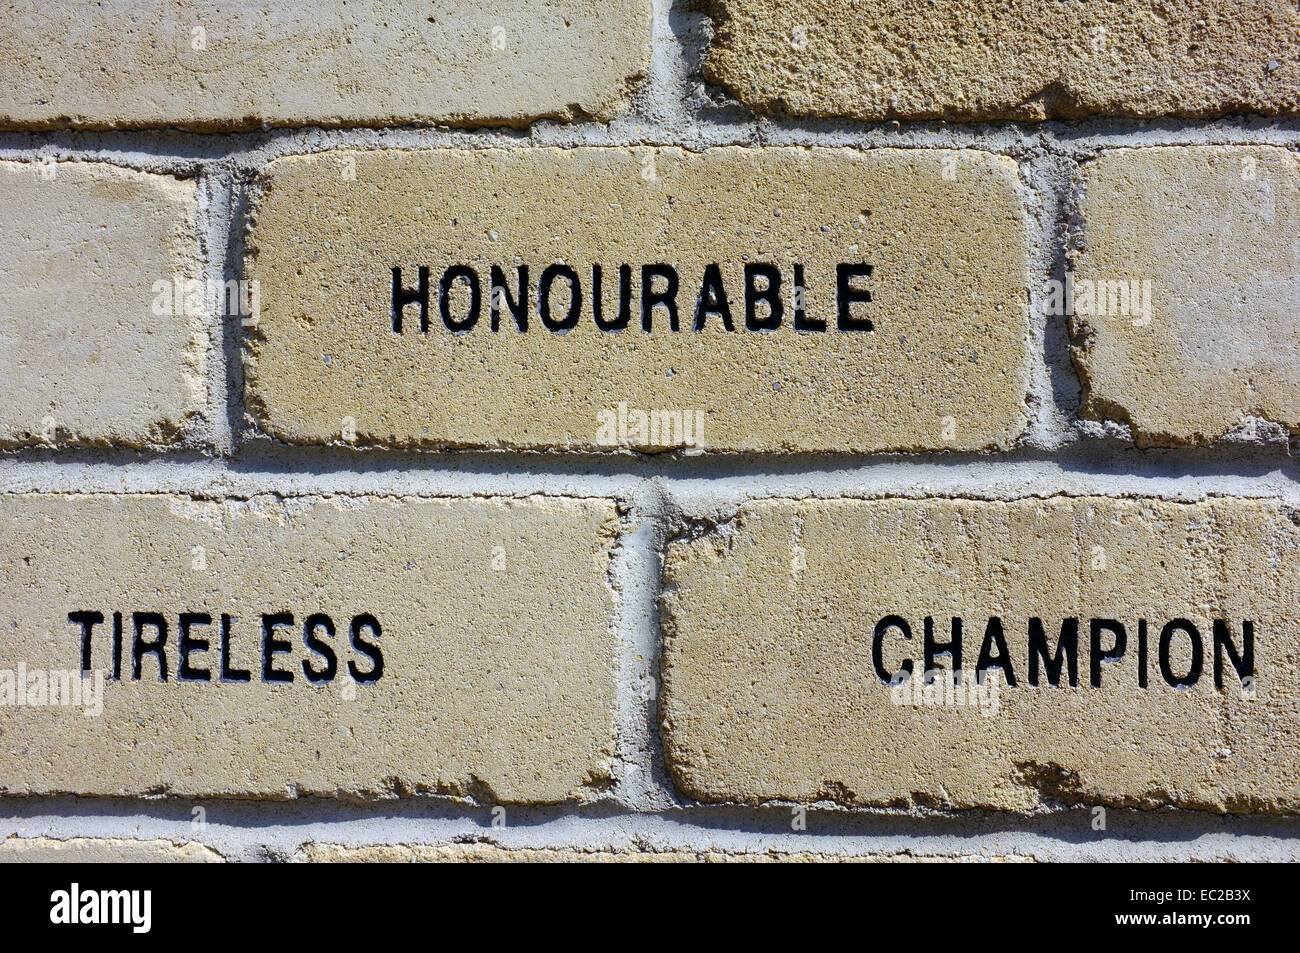 A brick with the words 'Honourable, Tireless and Champion' carved into it. - Stock Image